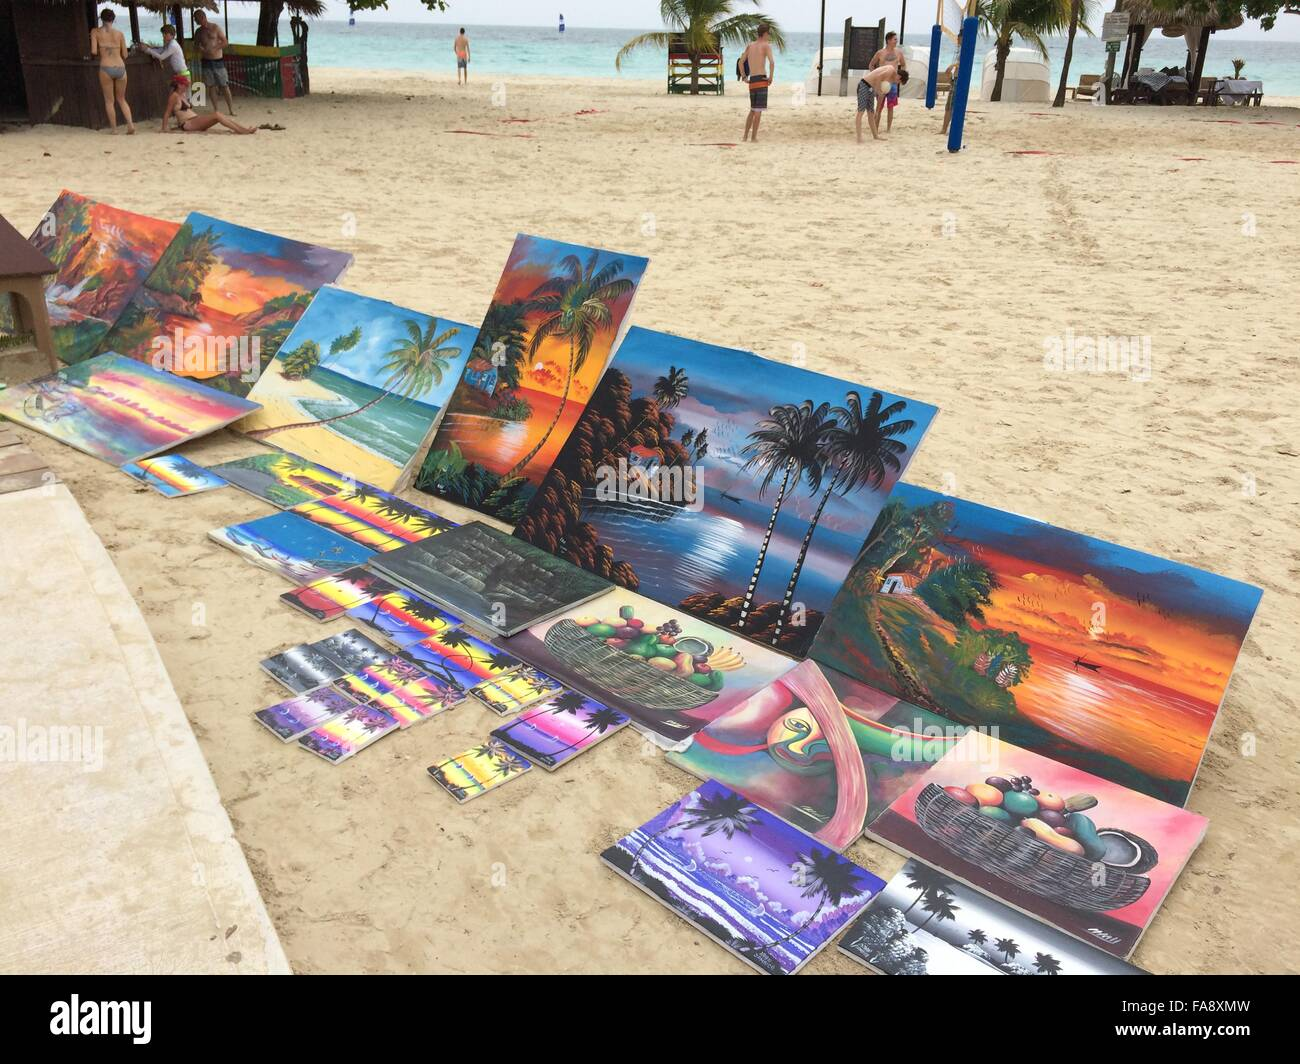 Paintings displayed on Seven Mile Beach in Negril, Jamaica - Stock Image